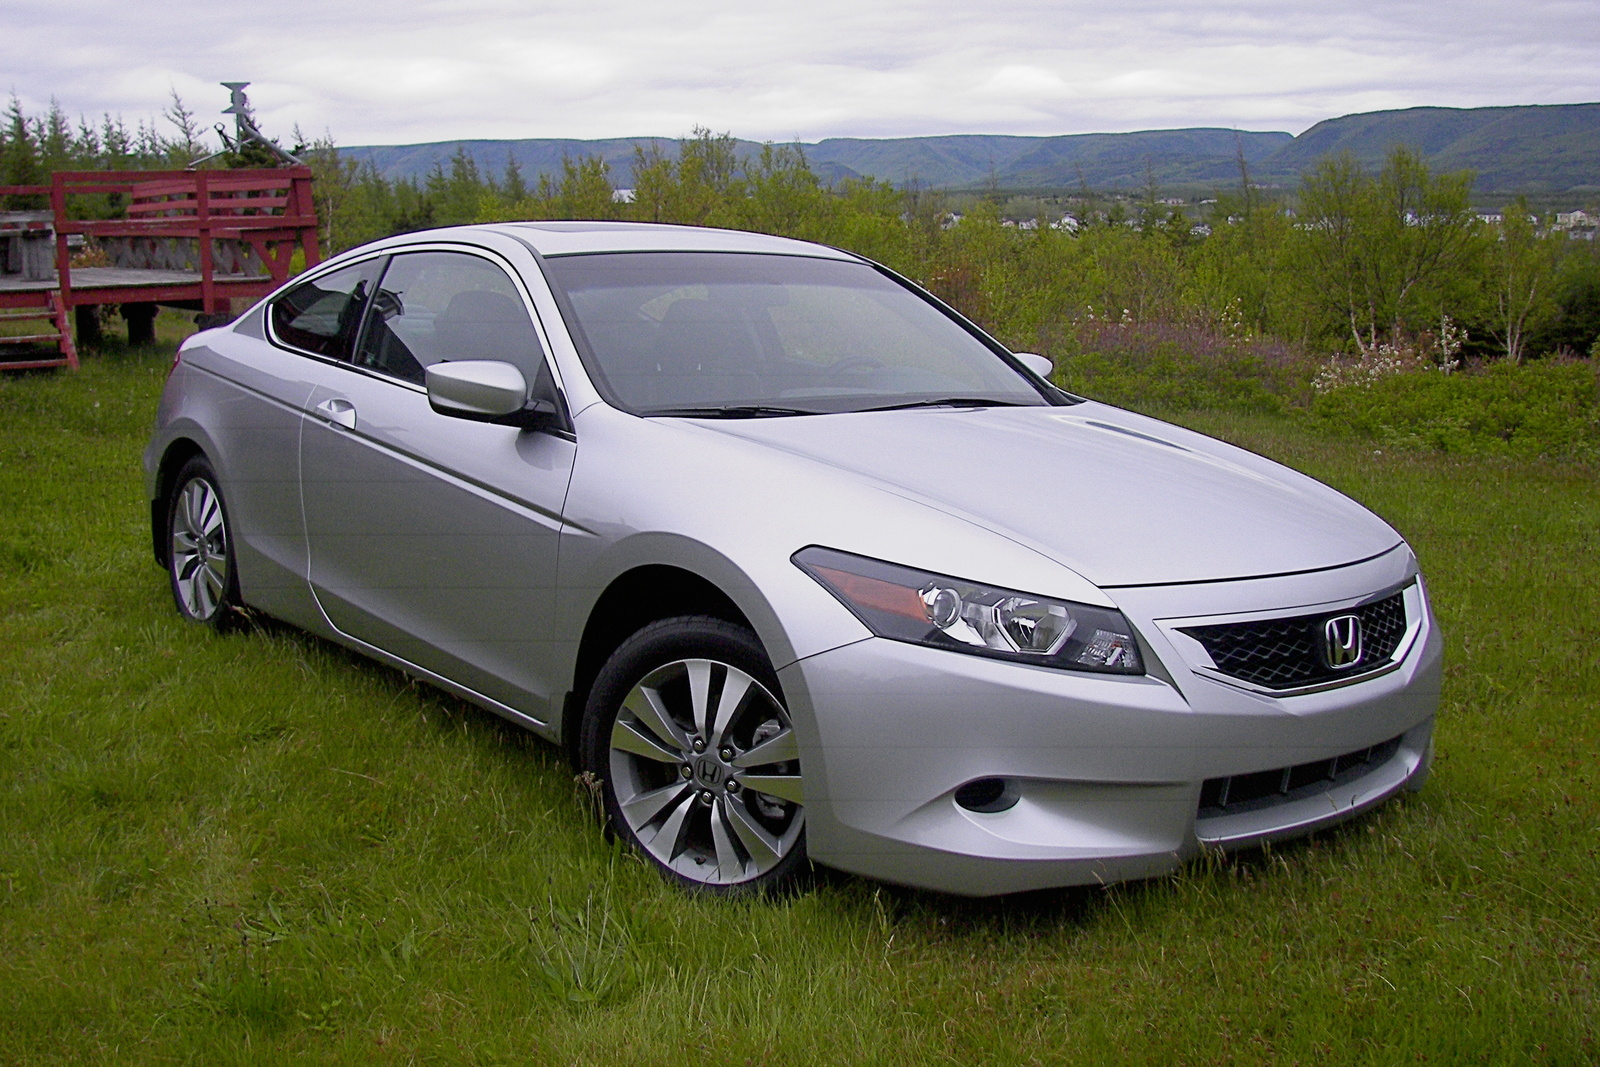 2008 Honda Accord Exl Coupe Www Proteckmachinery Com